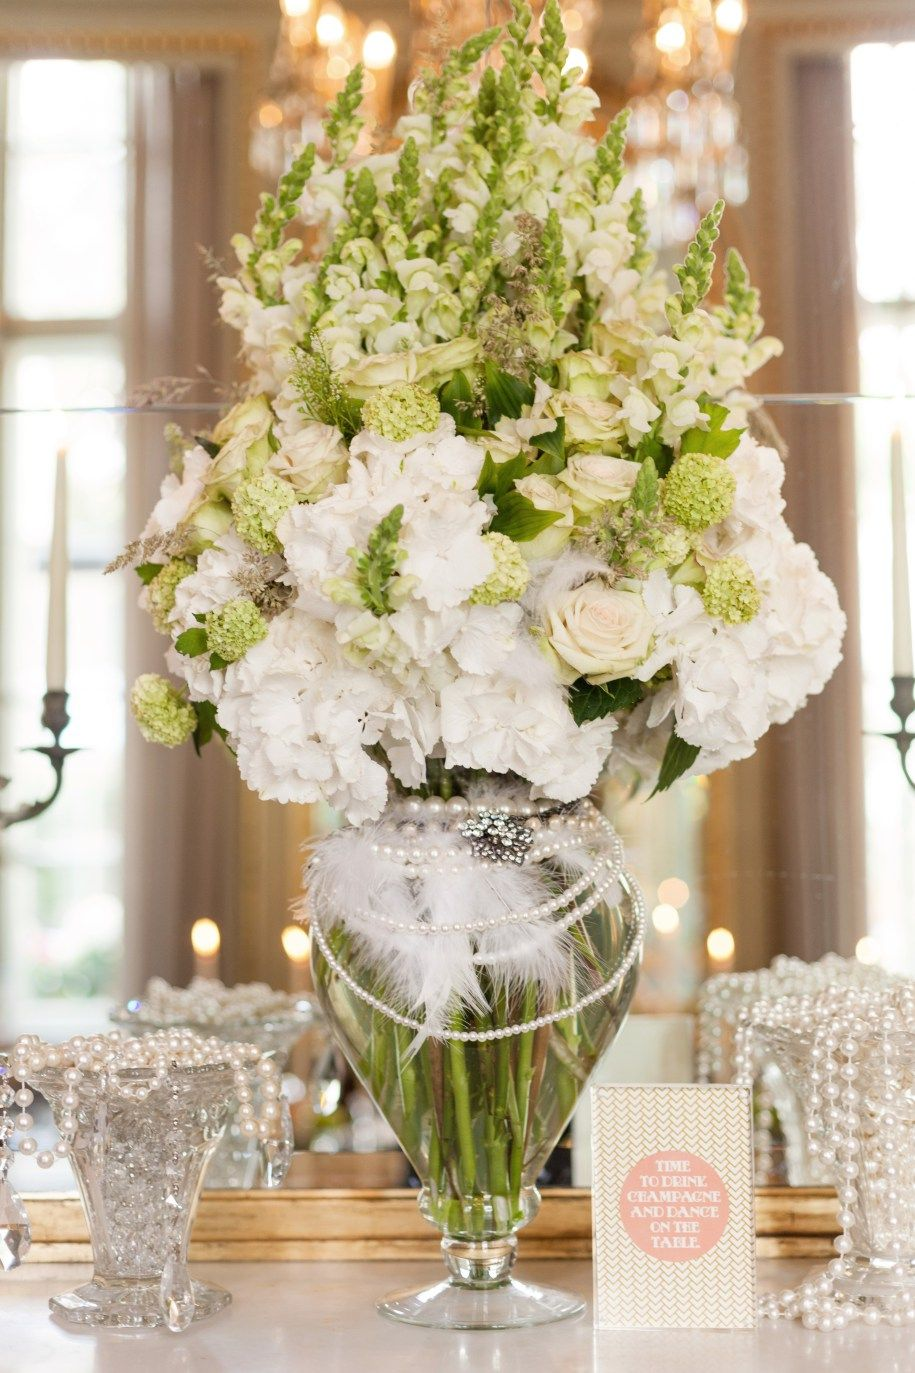 Wedding Flowers. A glorious bouquet for a foyer or entry into your event. Loads of white blooms with dainty soft green accents.